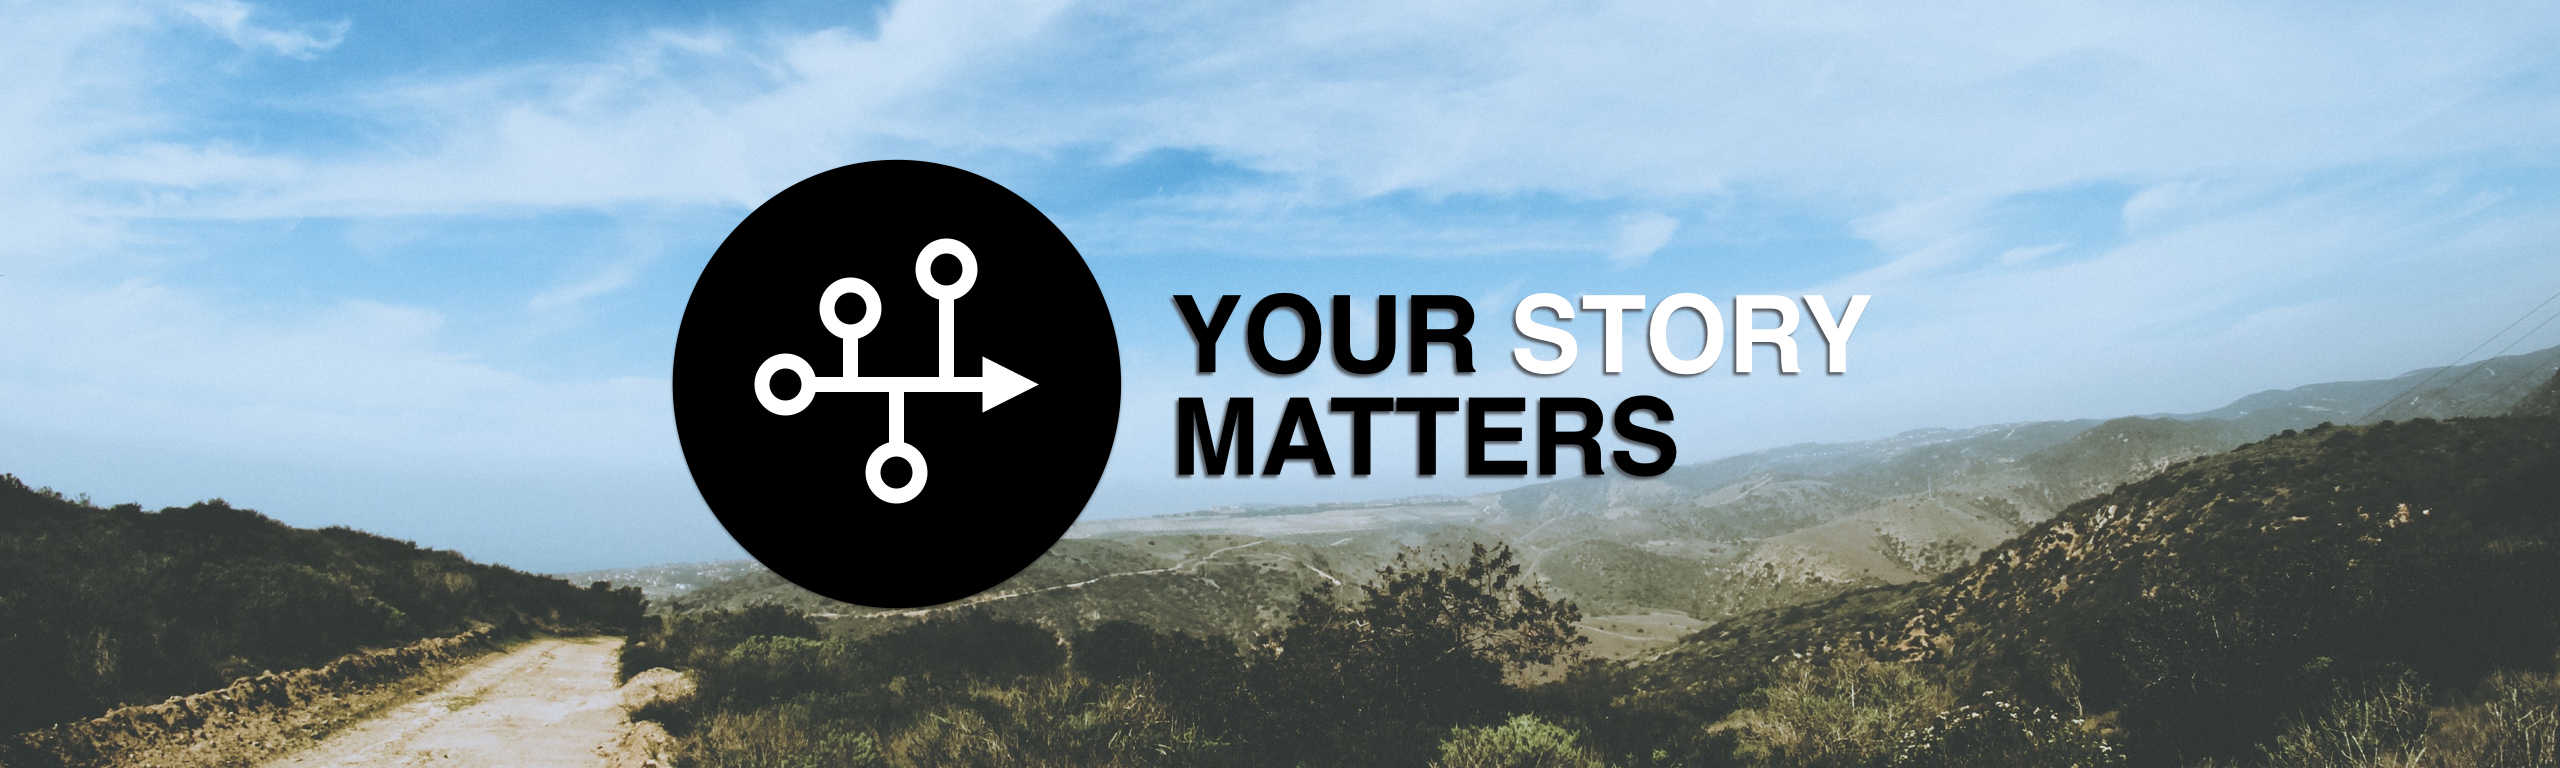 Your Story Matters - Center Screen - FINAL.001